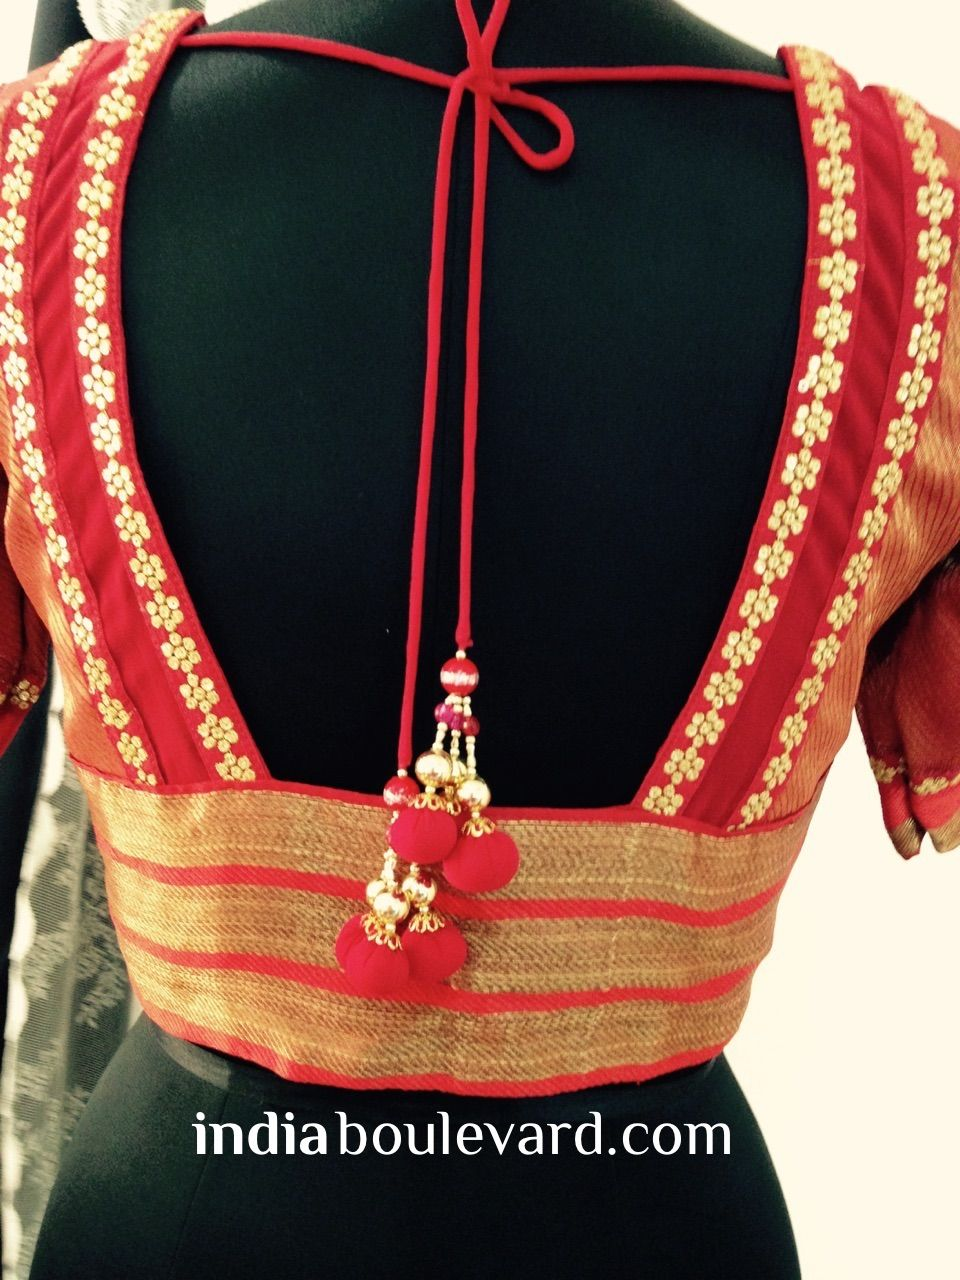 Hot off the sewing machine! A hot pink blouse with a sexy cut back studded with gold phulkari work and some beautiful droplets created by the team from scratch. Looks perfect when teamed with a plain gold sari or a mint green adding that contrast to your 'Desi Girl' look. Get your custom blouse at indiaboulevard.com or write to us at akta@indiaboulevard.com